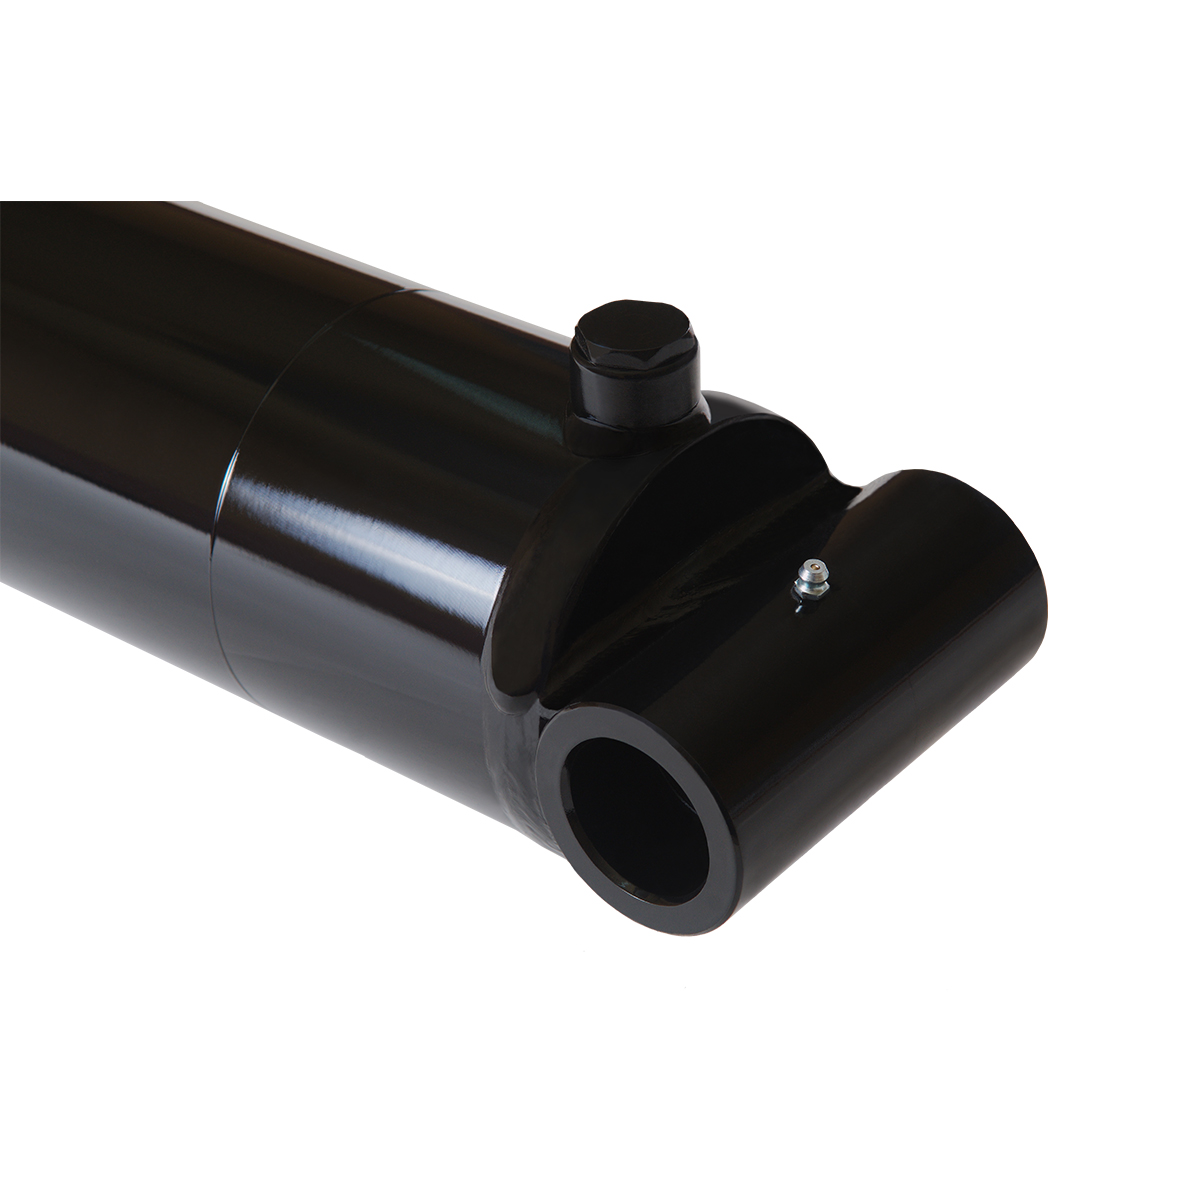 4 bore x 12 stroke hydraulic cylinder, welded cross tube double acting cylinder | Magister Hydraulics